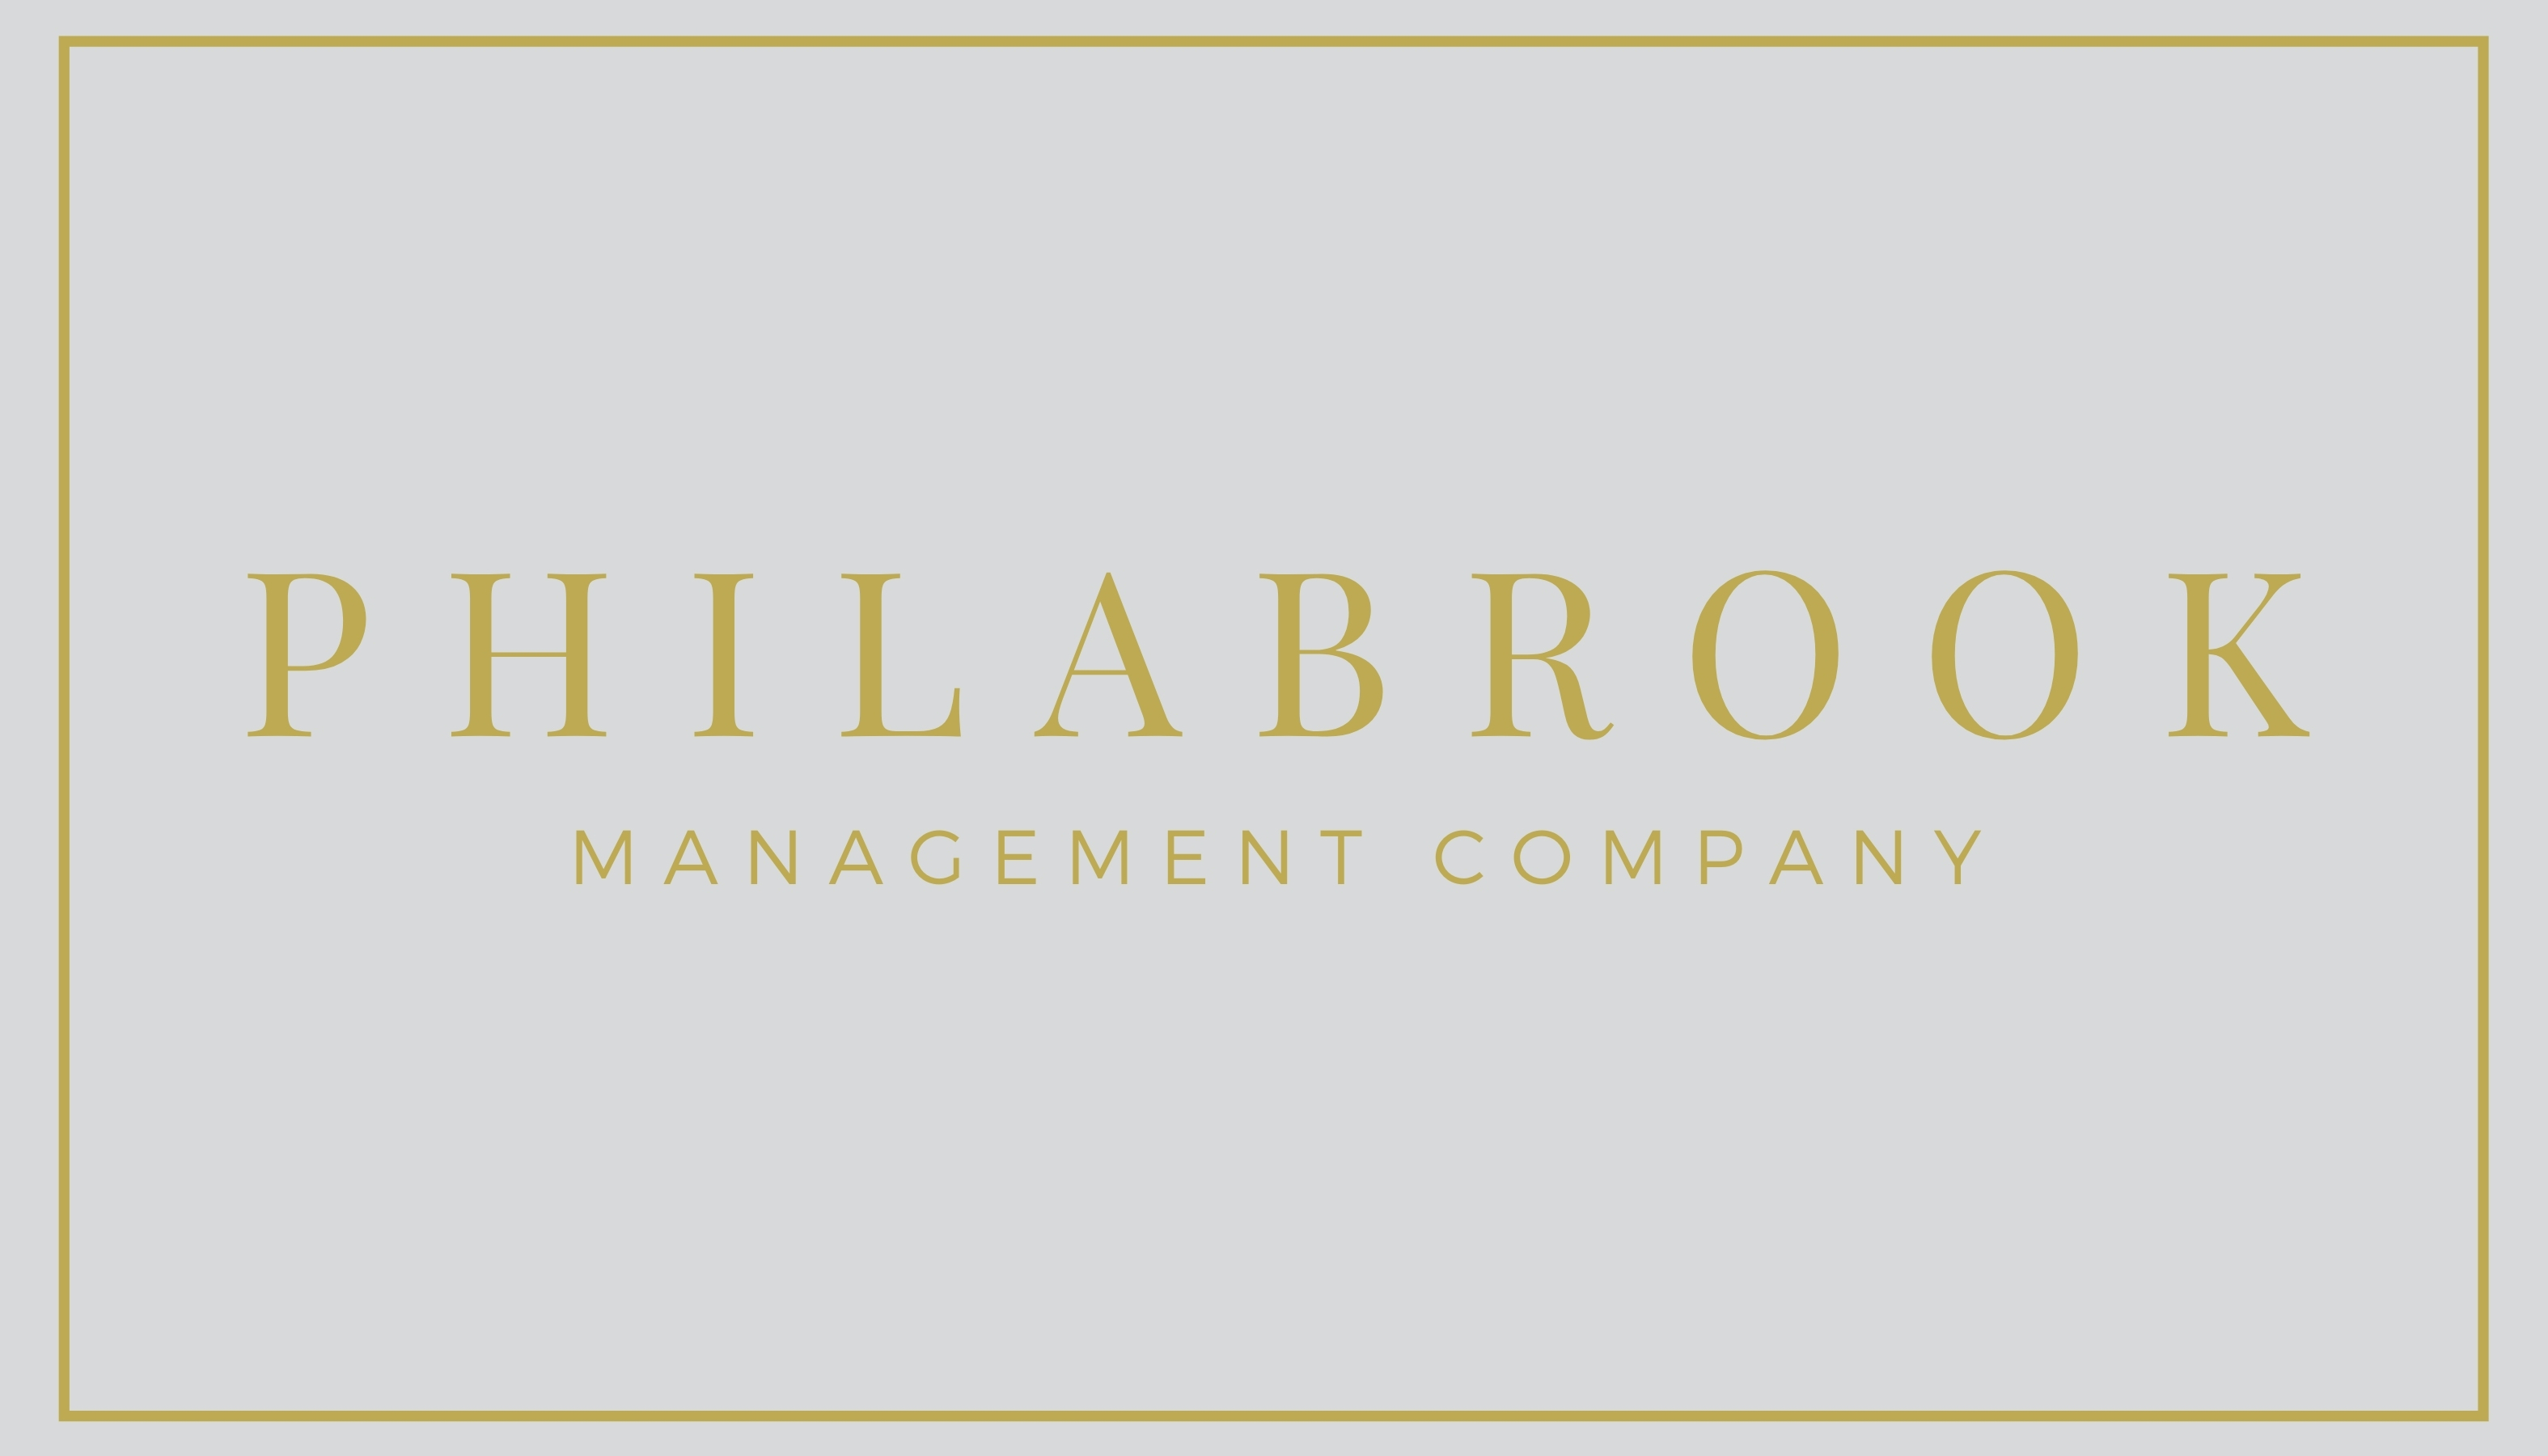 PHILABROOK